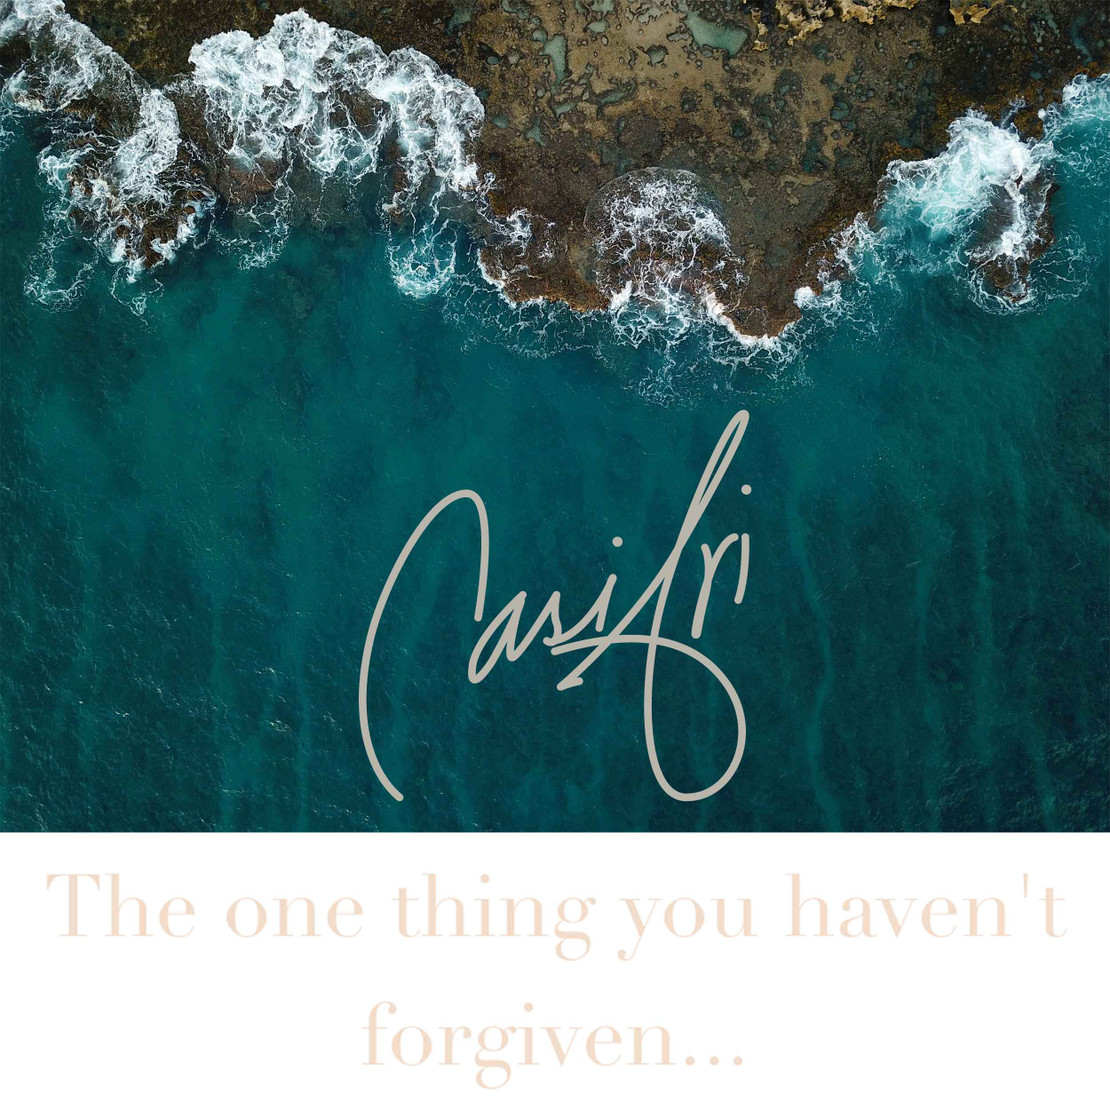 The One Thing You Haven't Forgiven...